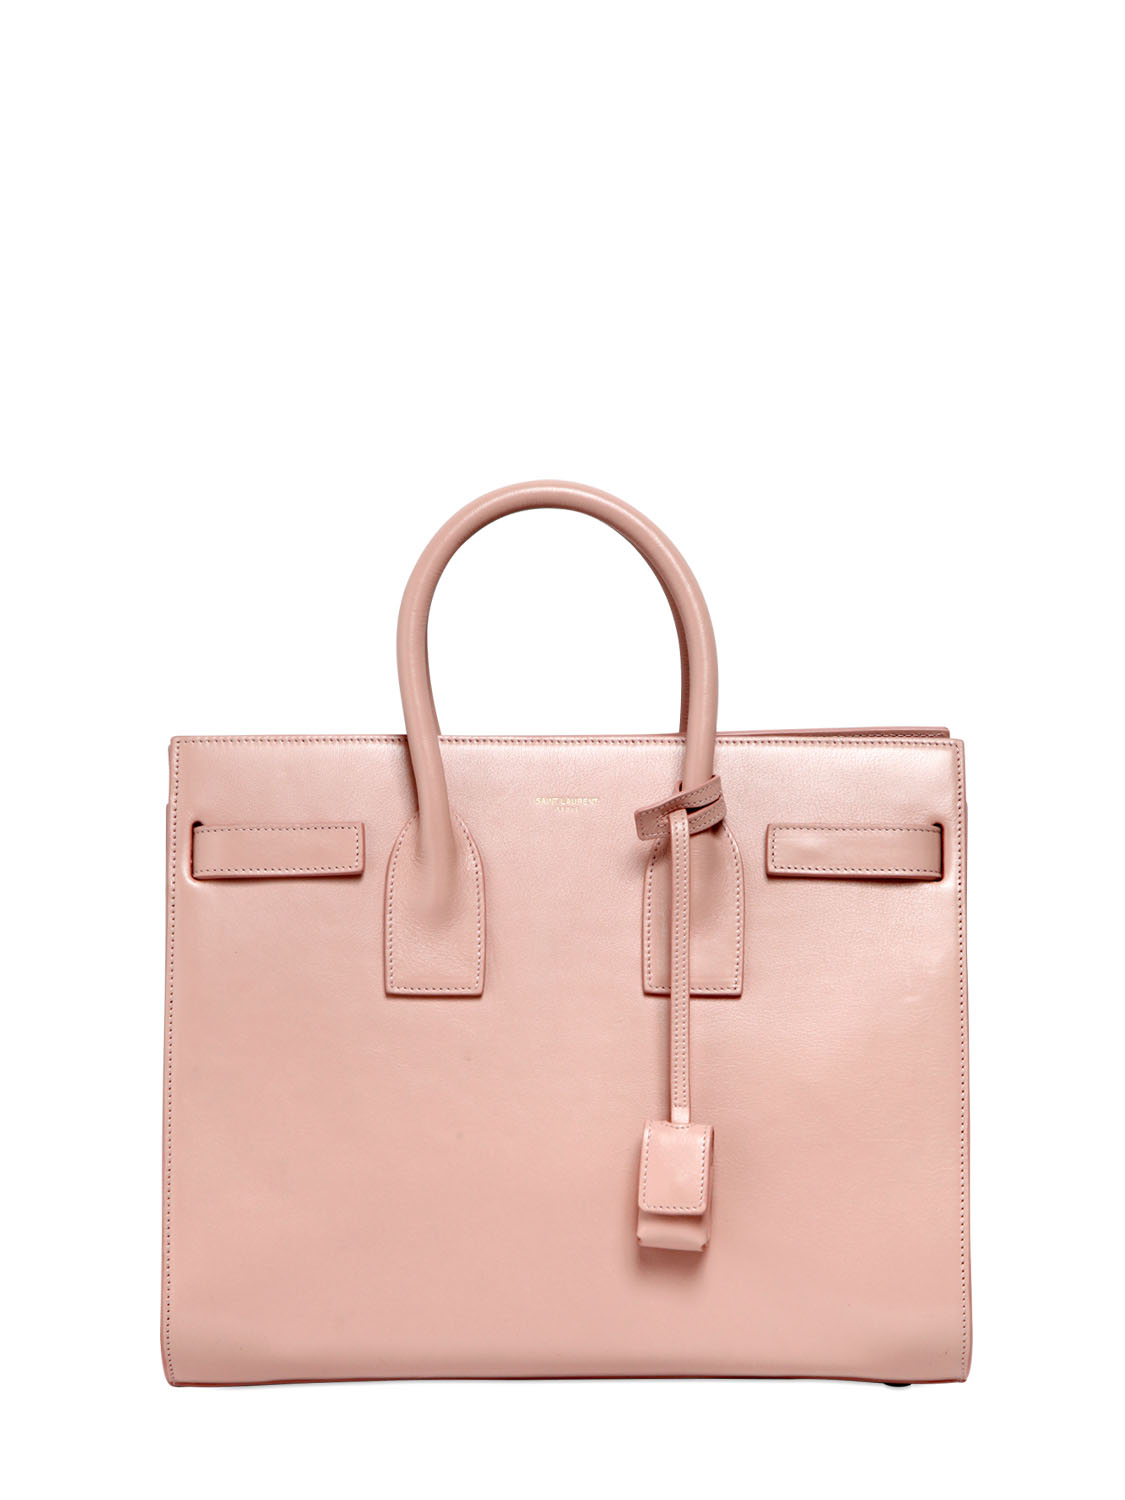 classic small sac de jour bag in fog grained leather yves